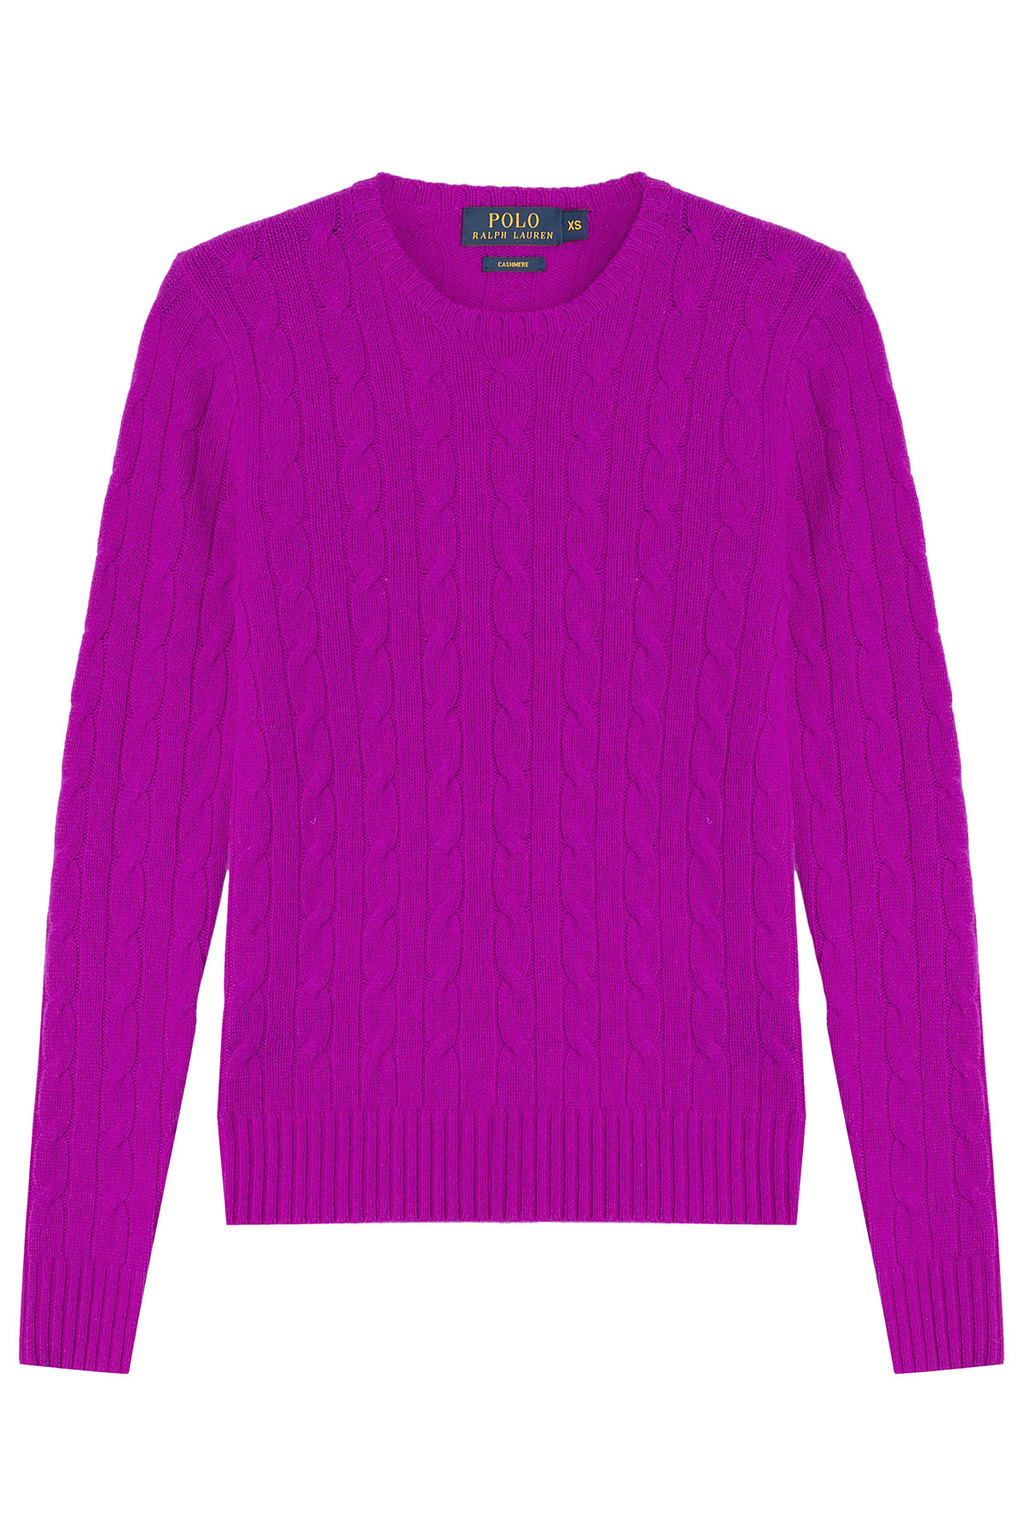 Cashmere Cable Knit Pullover None - style: standard; pattern: cable knit; predominant colour: purple; occasions: casual; length: standard; fit: slim fit; neckline: crew; fibres: cashmere - 100%; sleeve length: long sleeve; sleeve style: standard; texture group: knits/crochet; pattern type: fabric; season: a/w 2015; wardrobe: highlight